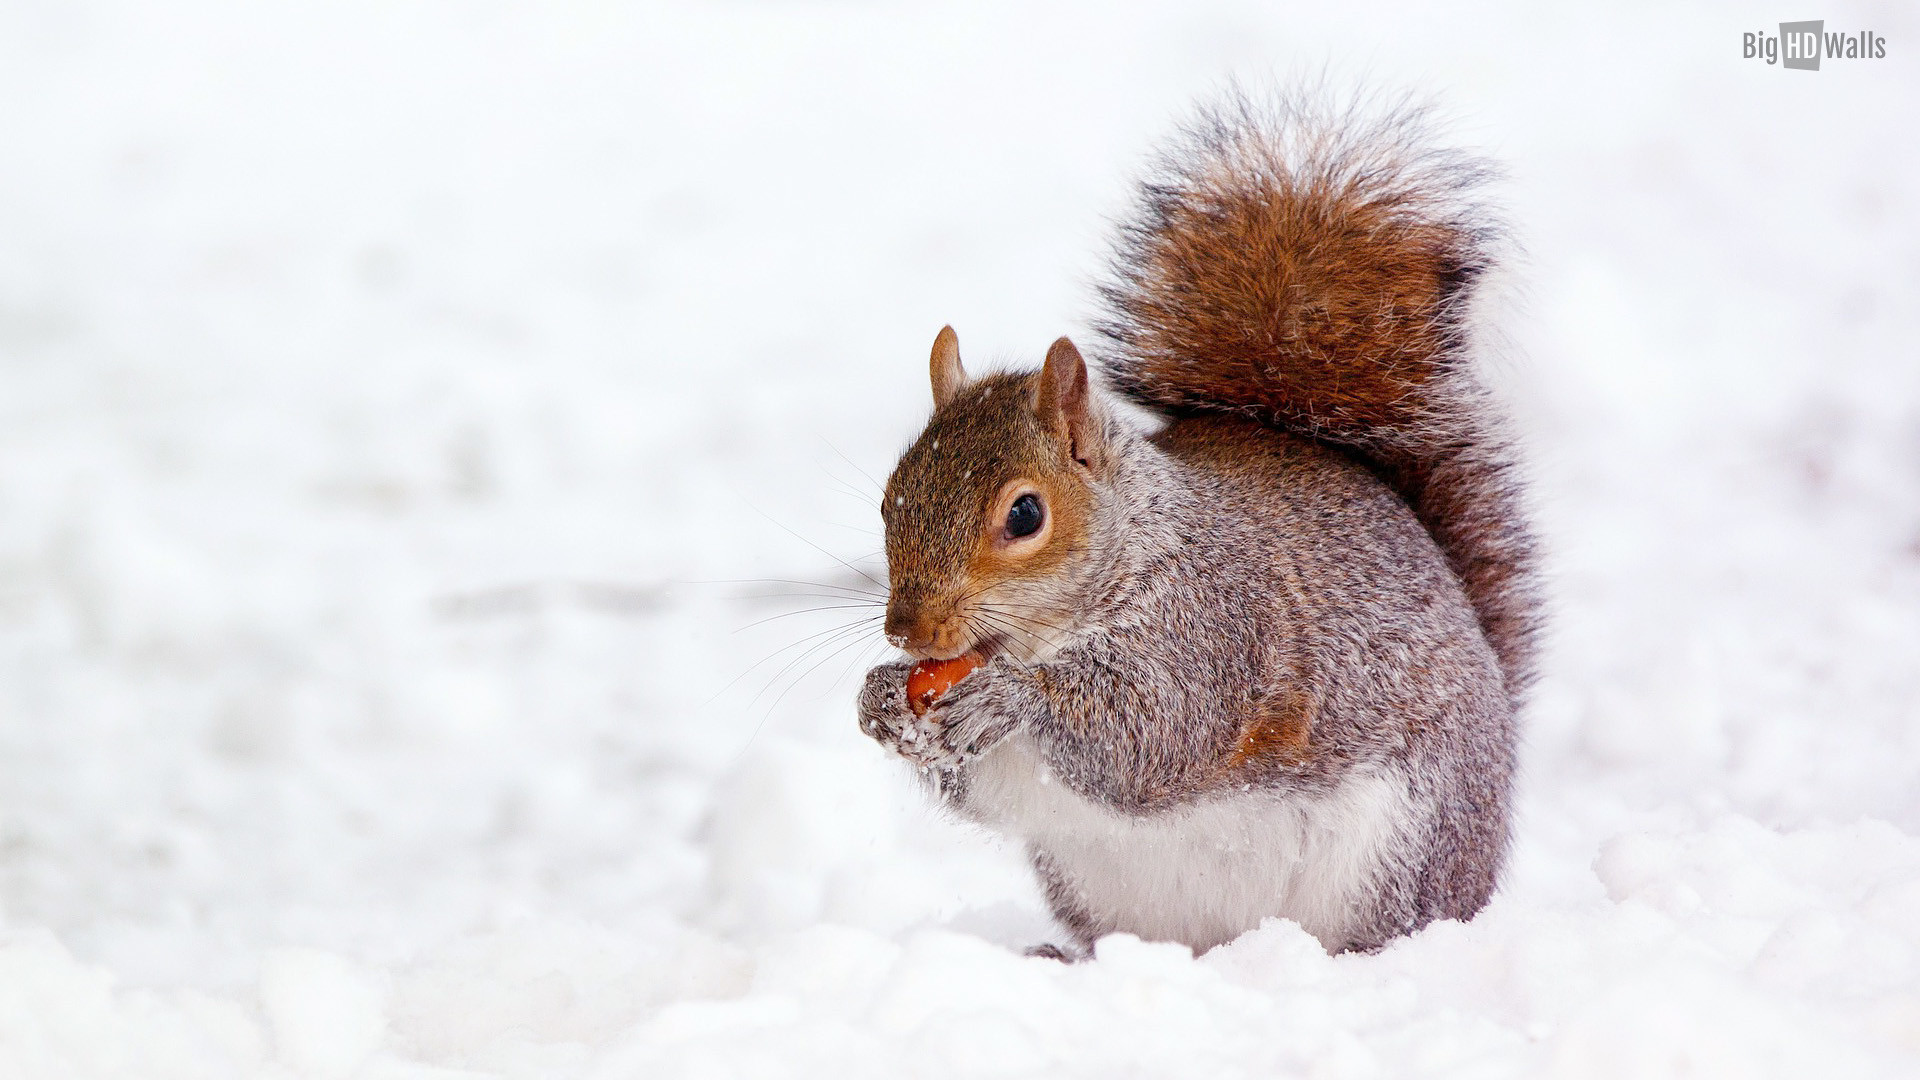 Cute Winter Animal Wallpaper 48 Images